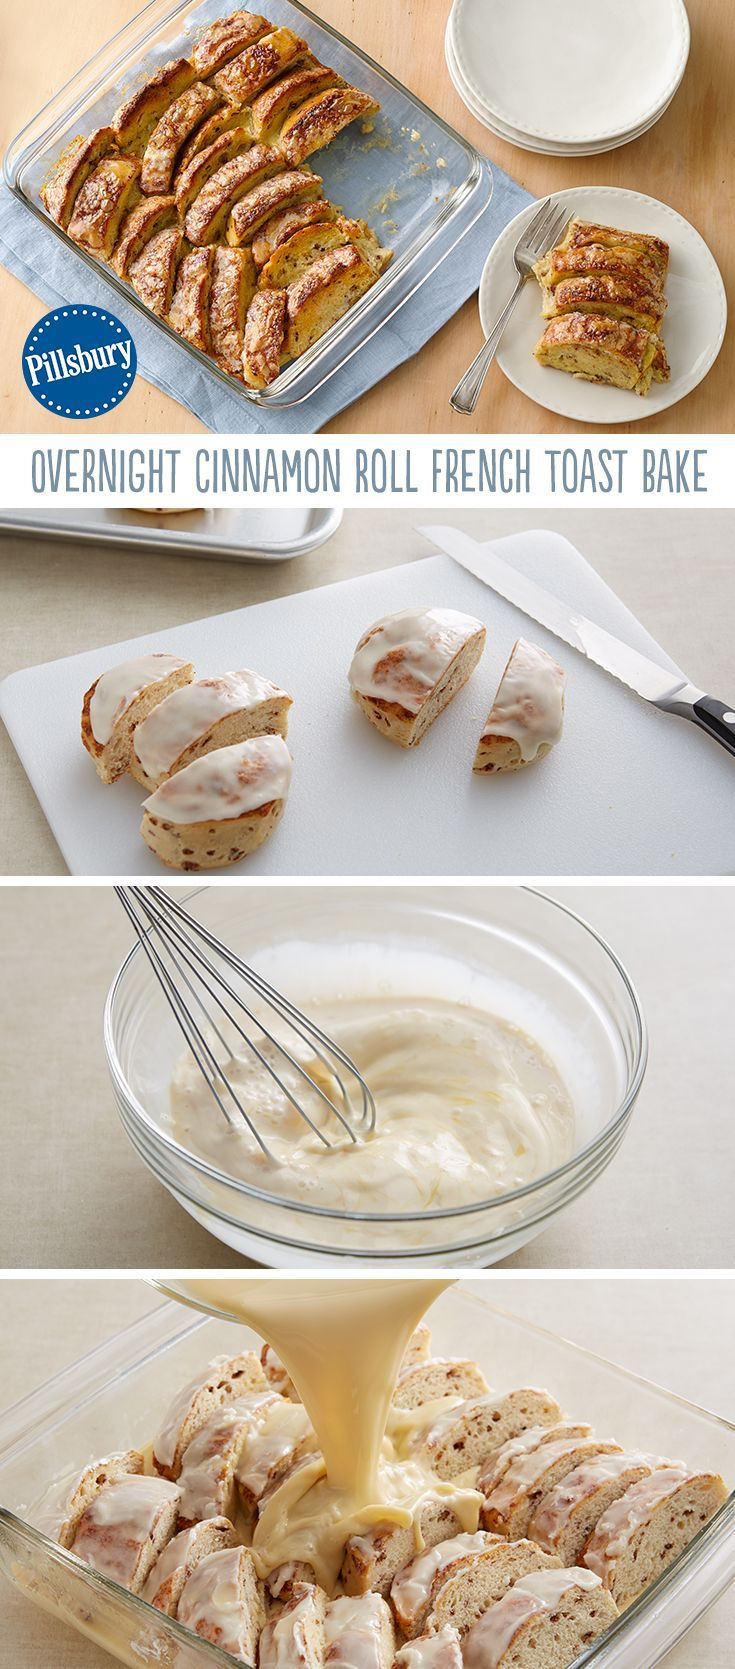 No time in the morning, but want a delicious breakfast? Try this overnight Cinnamon Roll French Toast Bake! You can prep it the night before, refrigerate and pop in the oven in the morning. Be sure to top it off with warm maple syrup! PS: Have you heard the good news? Pillsbury Cinnamon Rolls now have more icing (so this recipe is extra gooey and delicious)!